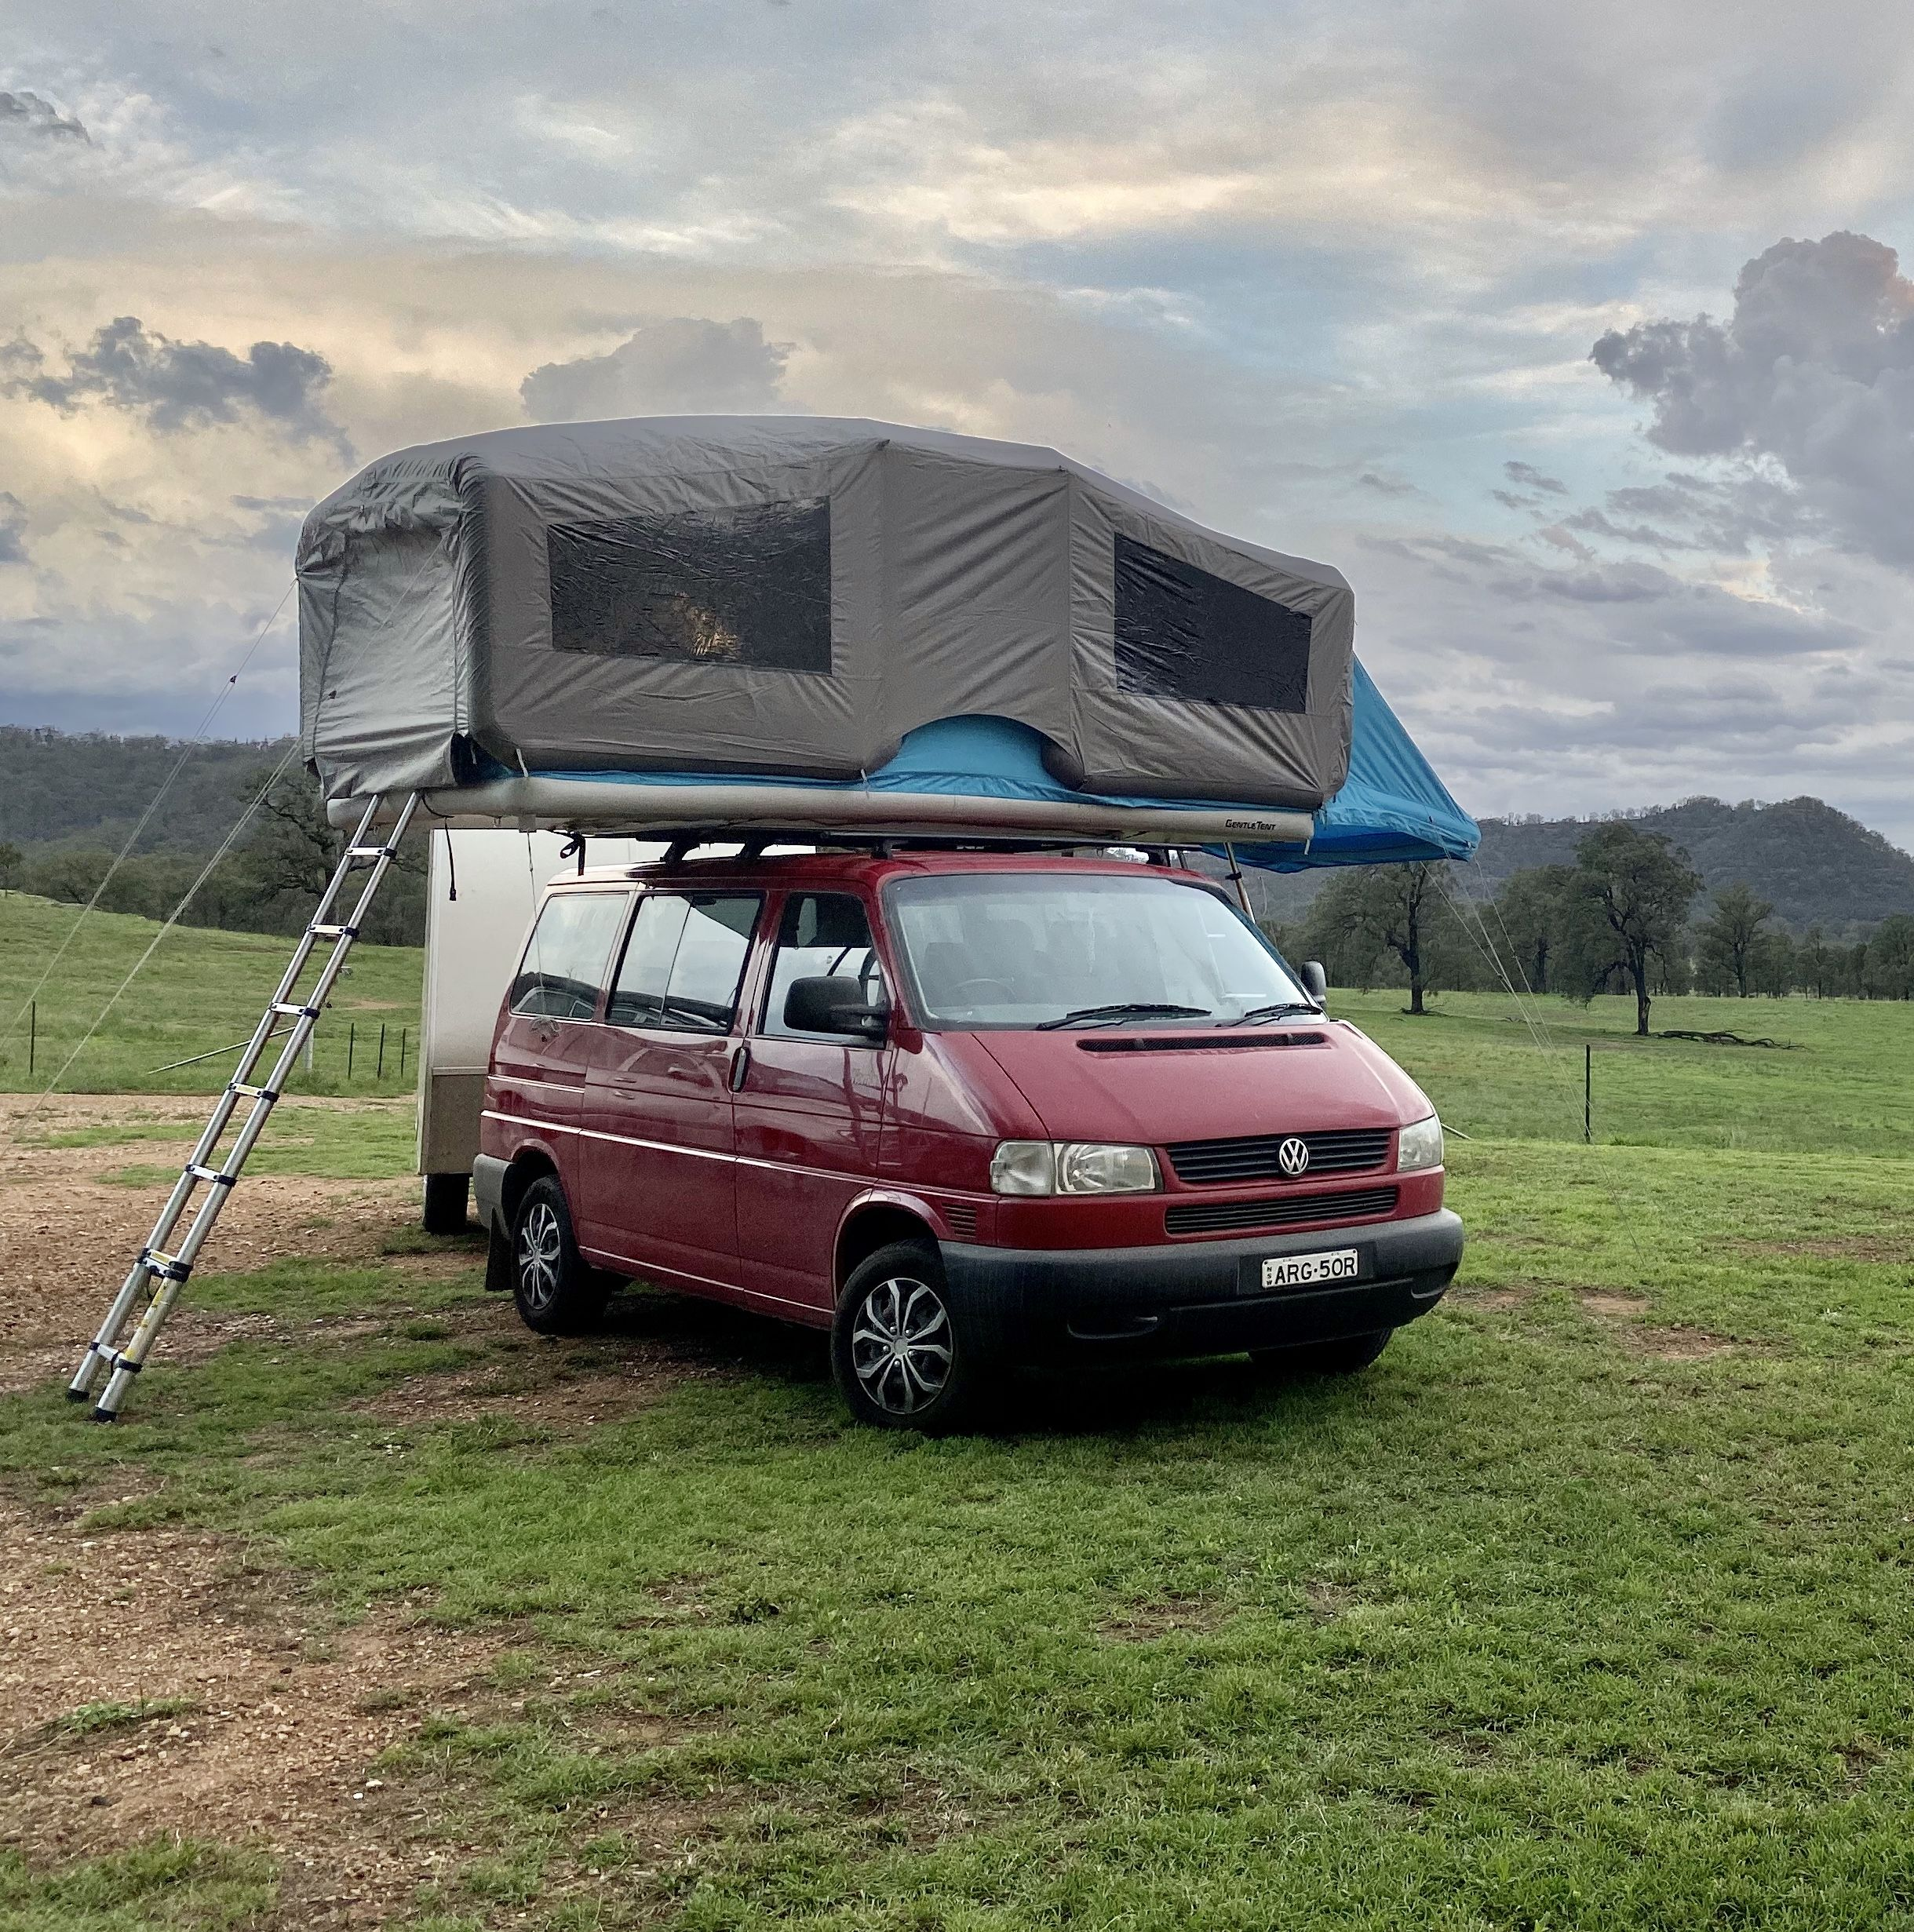 Gt Skyloft With Storm Cover In 2020 Roof Top Tent Australia Tent